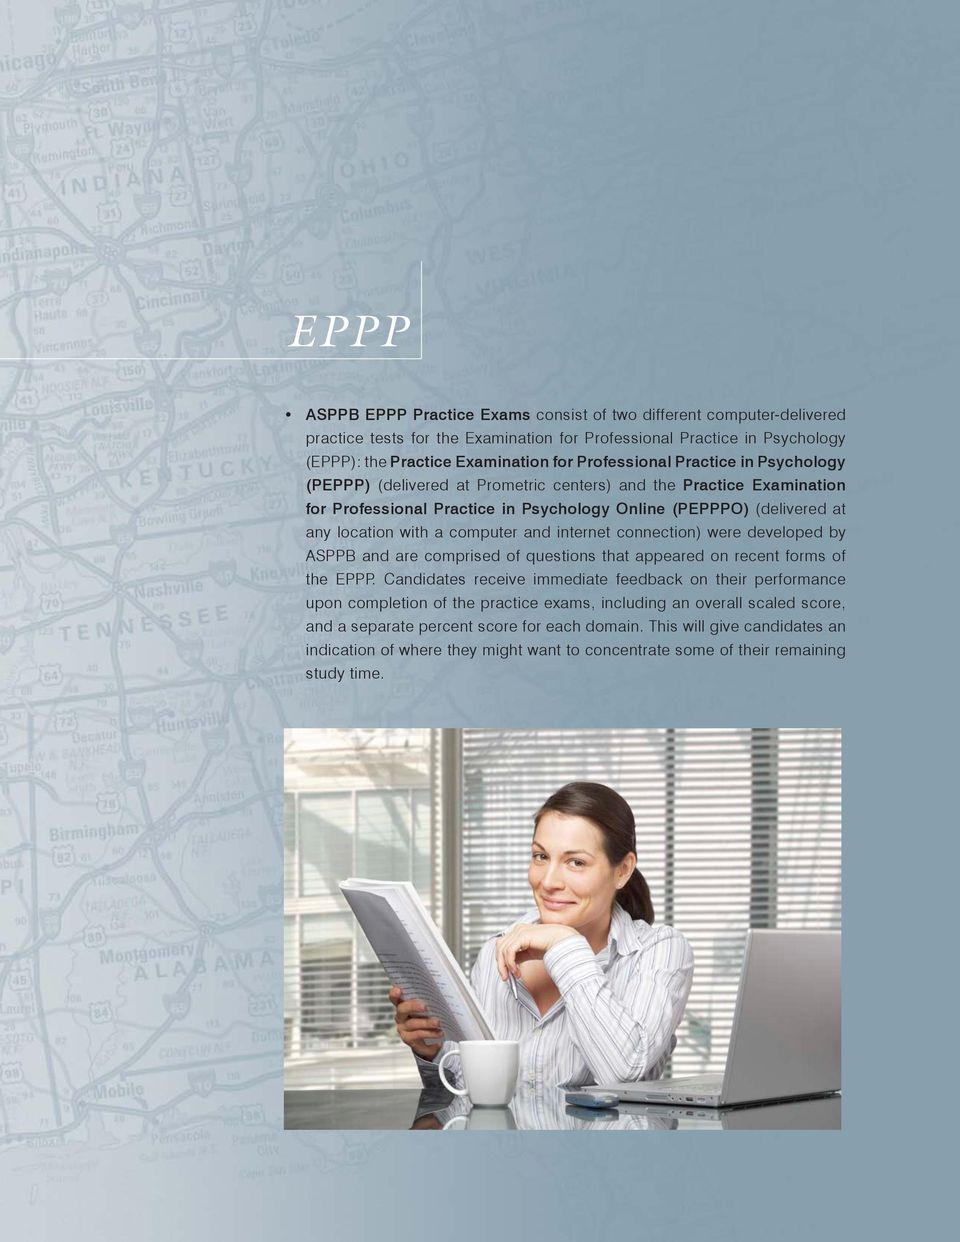 internet connection) were developed by ASPPB and are comprised of questions that appeared on recent forms of the EPPP.